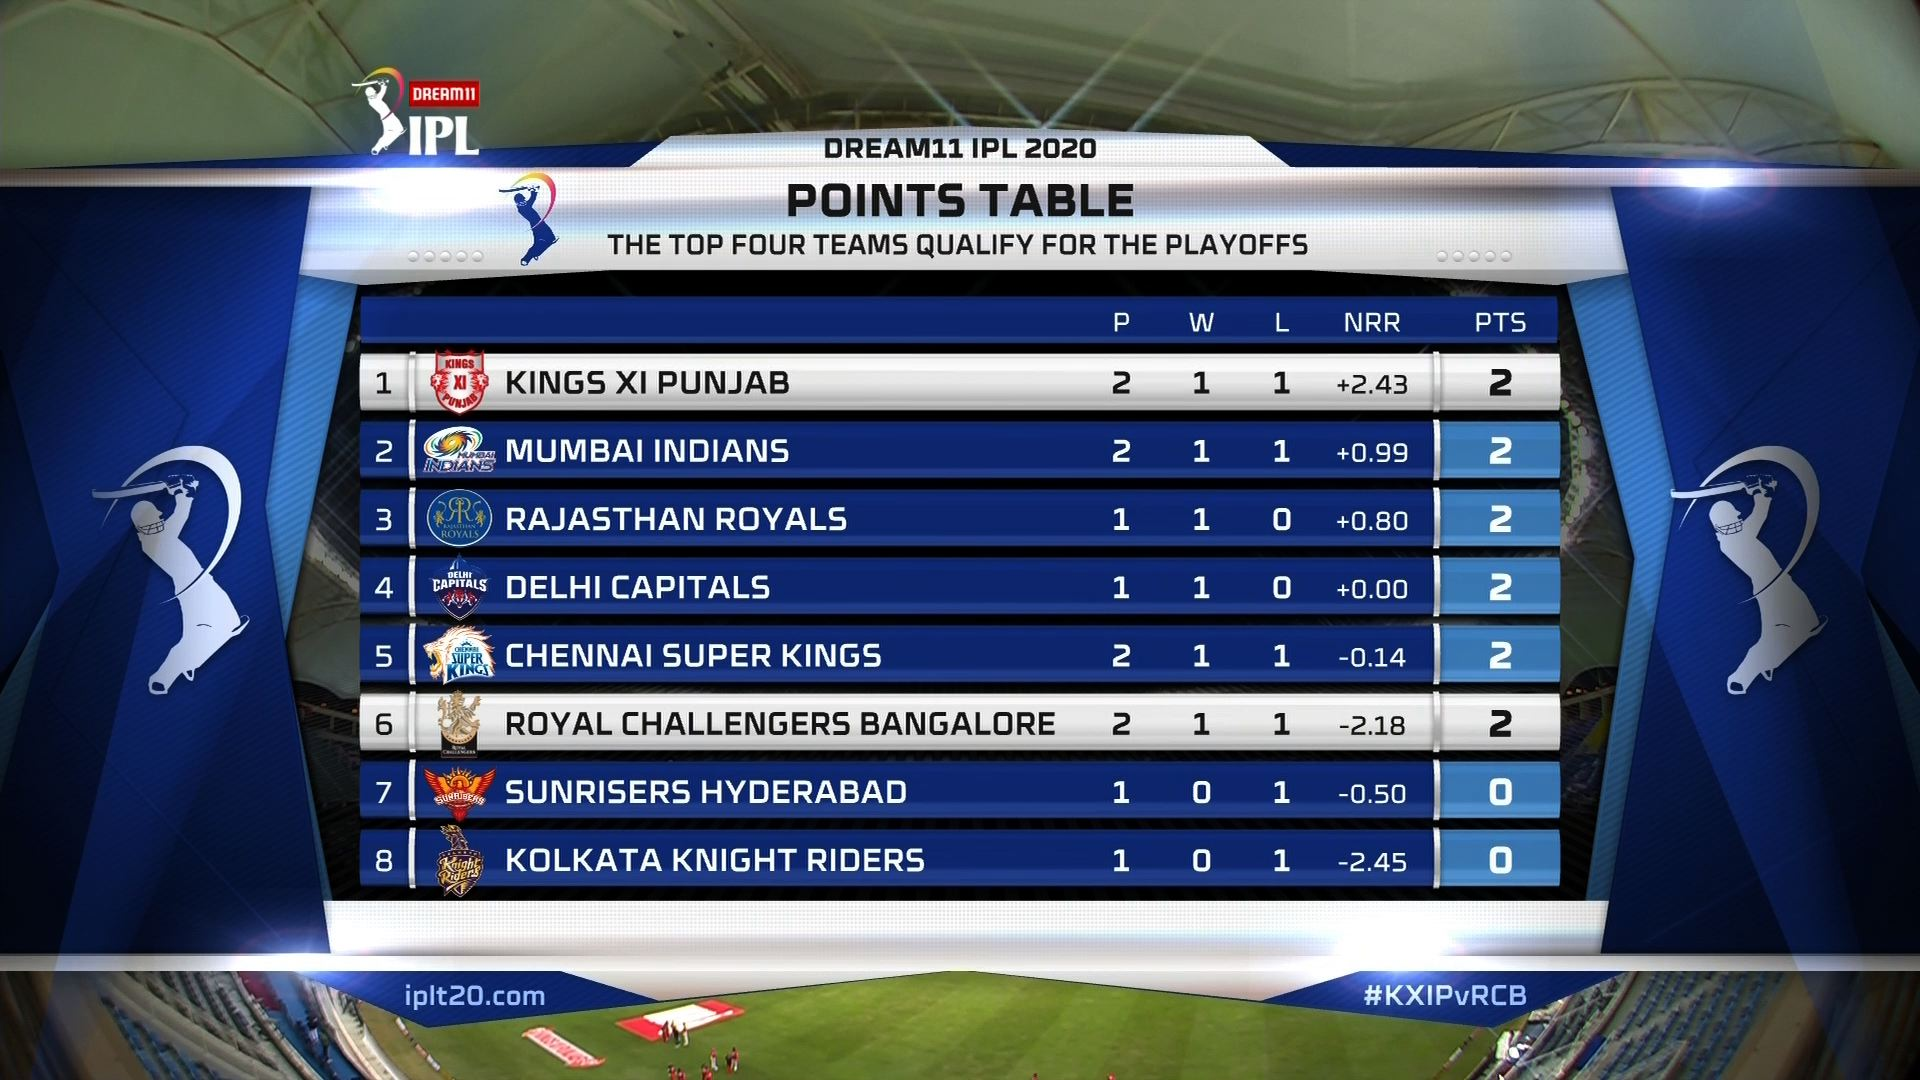 IPL 2020 Point Table